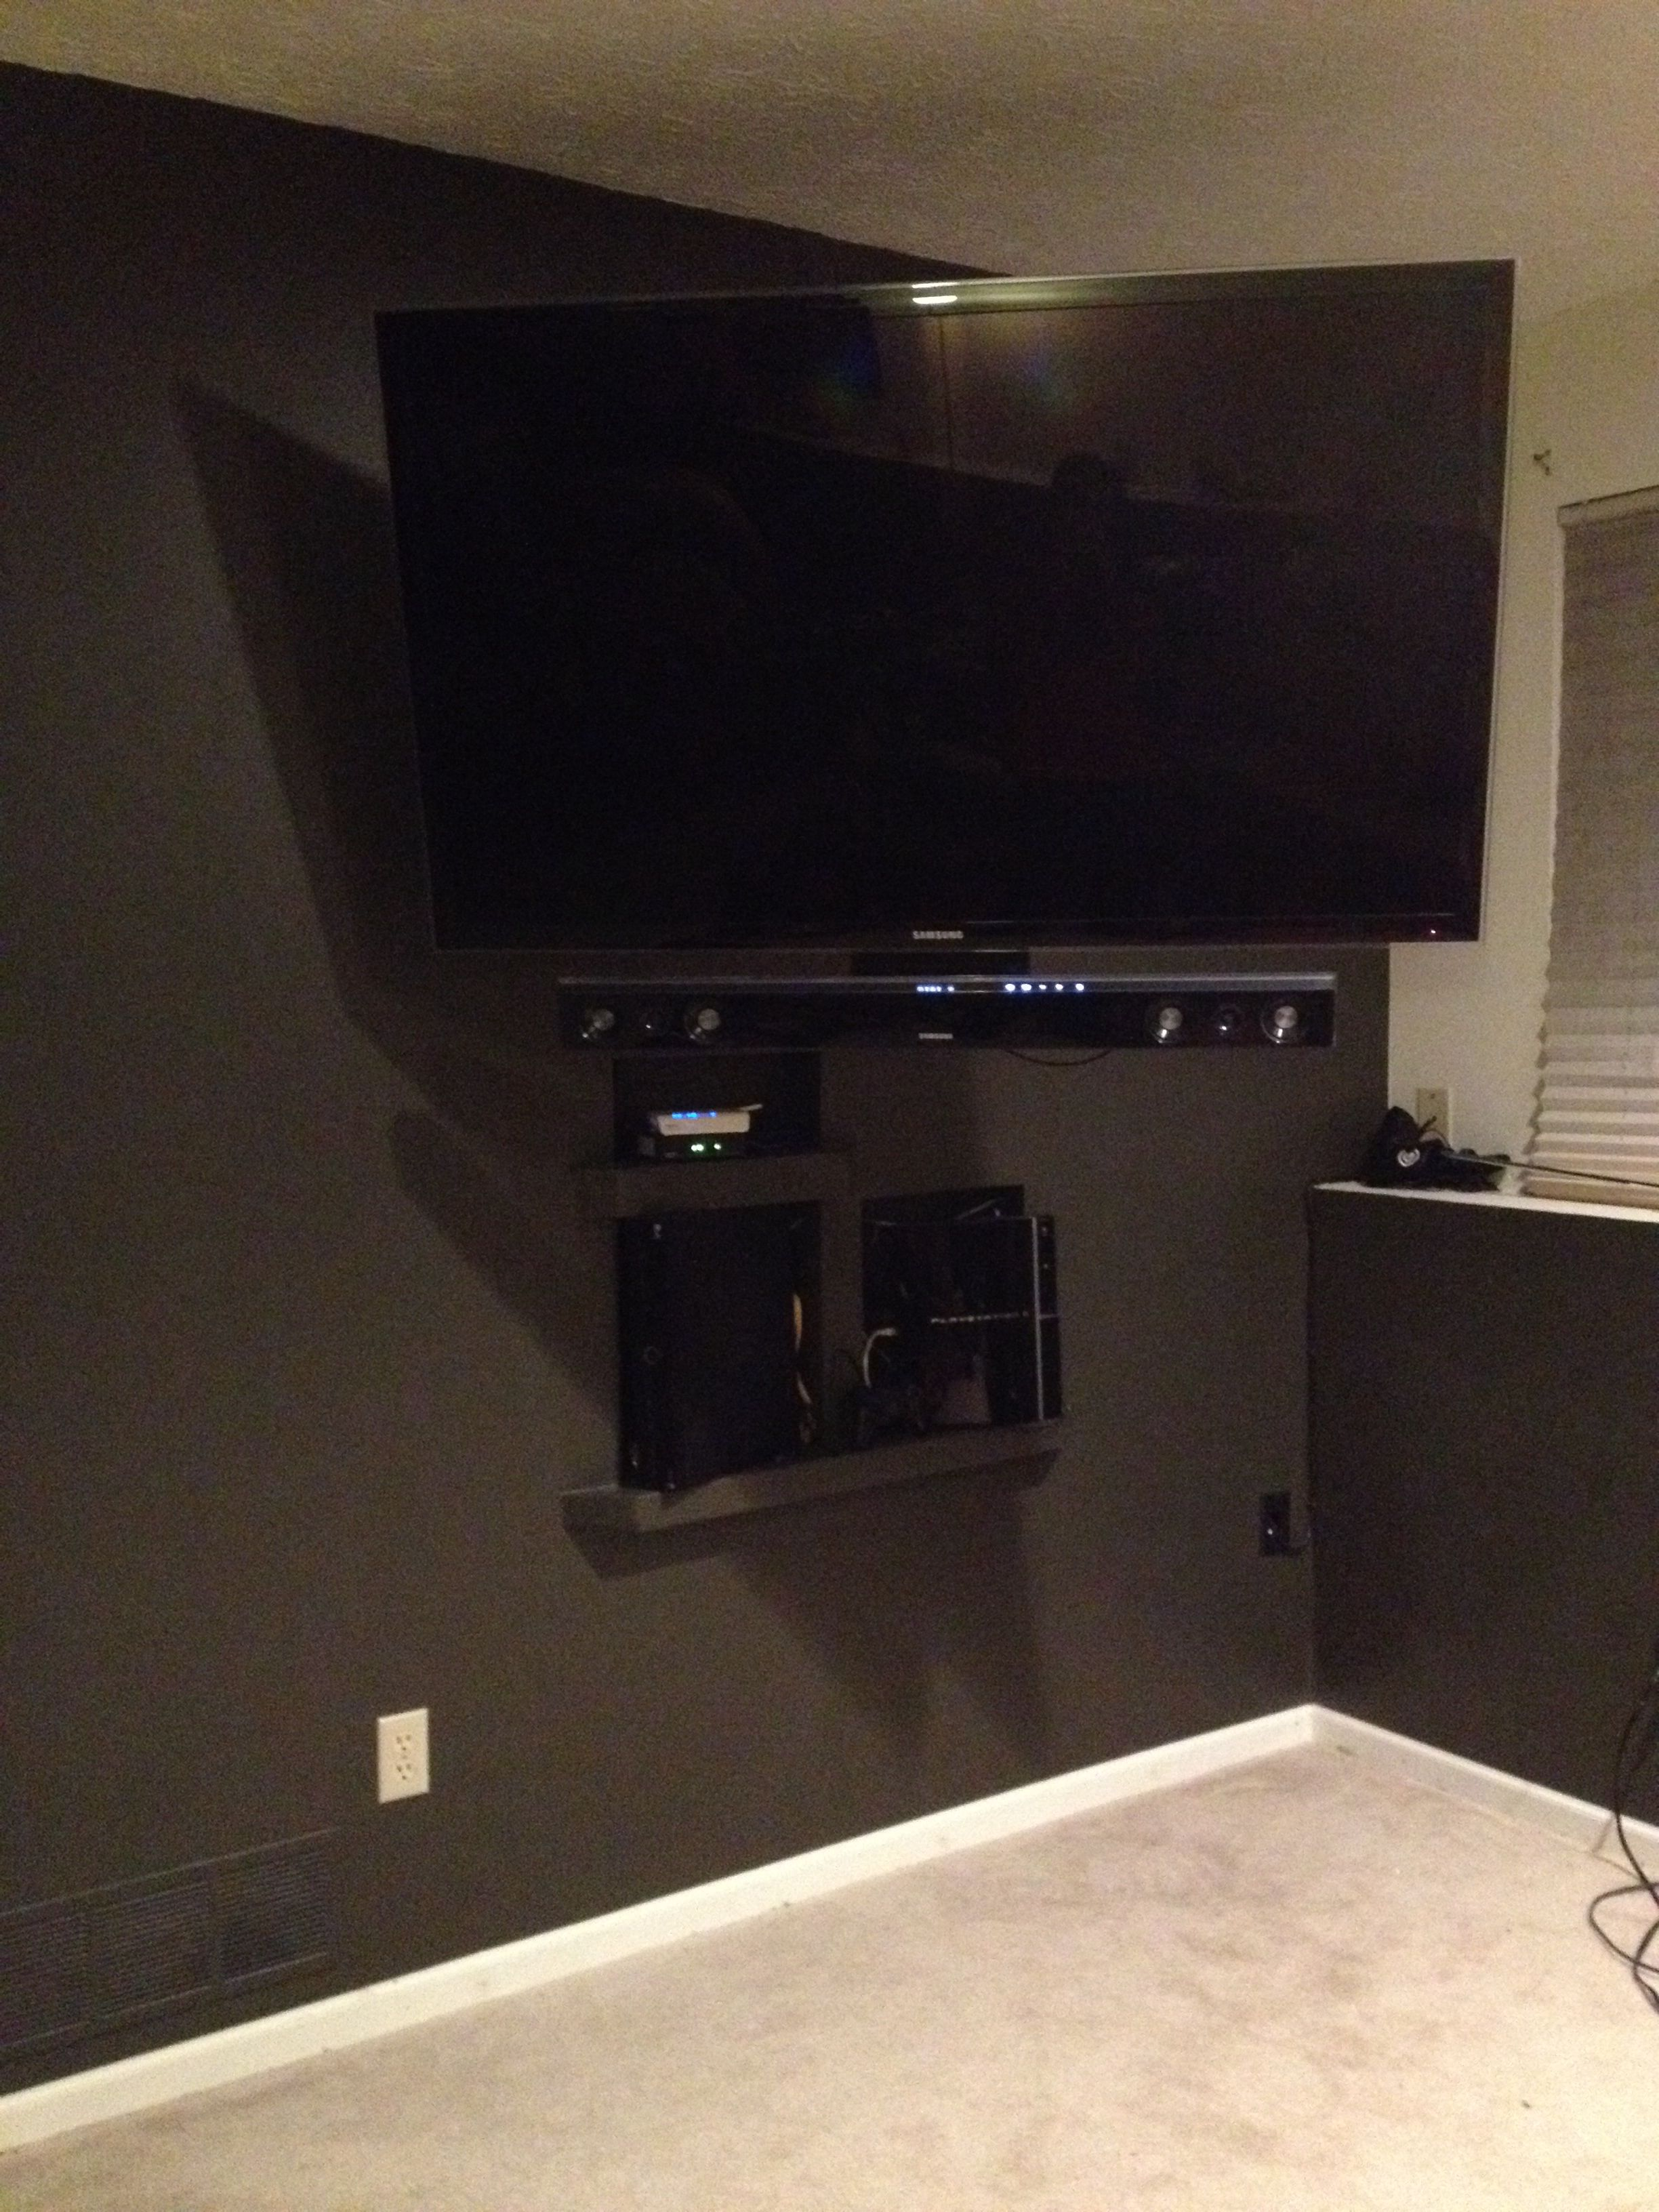 In Wall Shelving For Game Systems Cable Box Modem Etc Wires Accessible Via Access Panel In Adjoining Room Access Panel Cable Box Wall Shelves